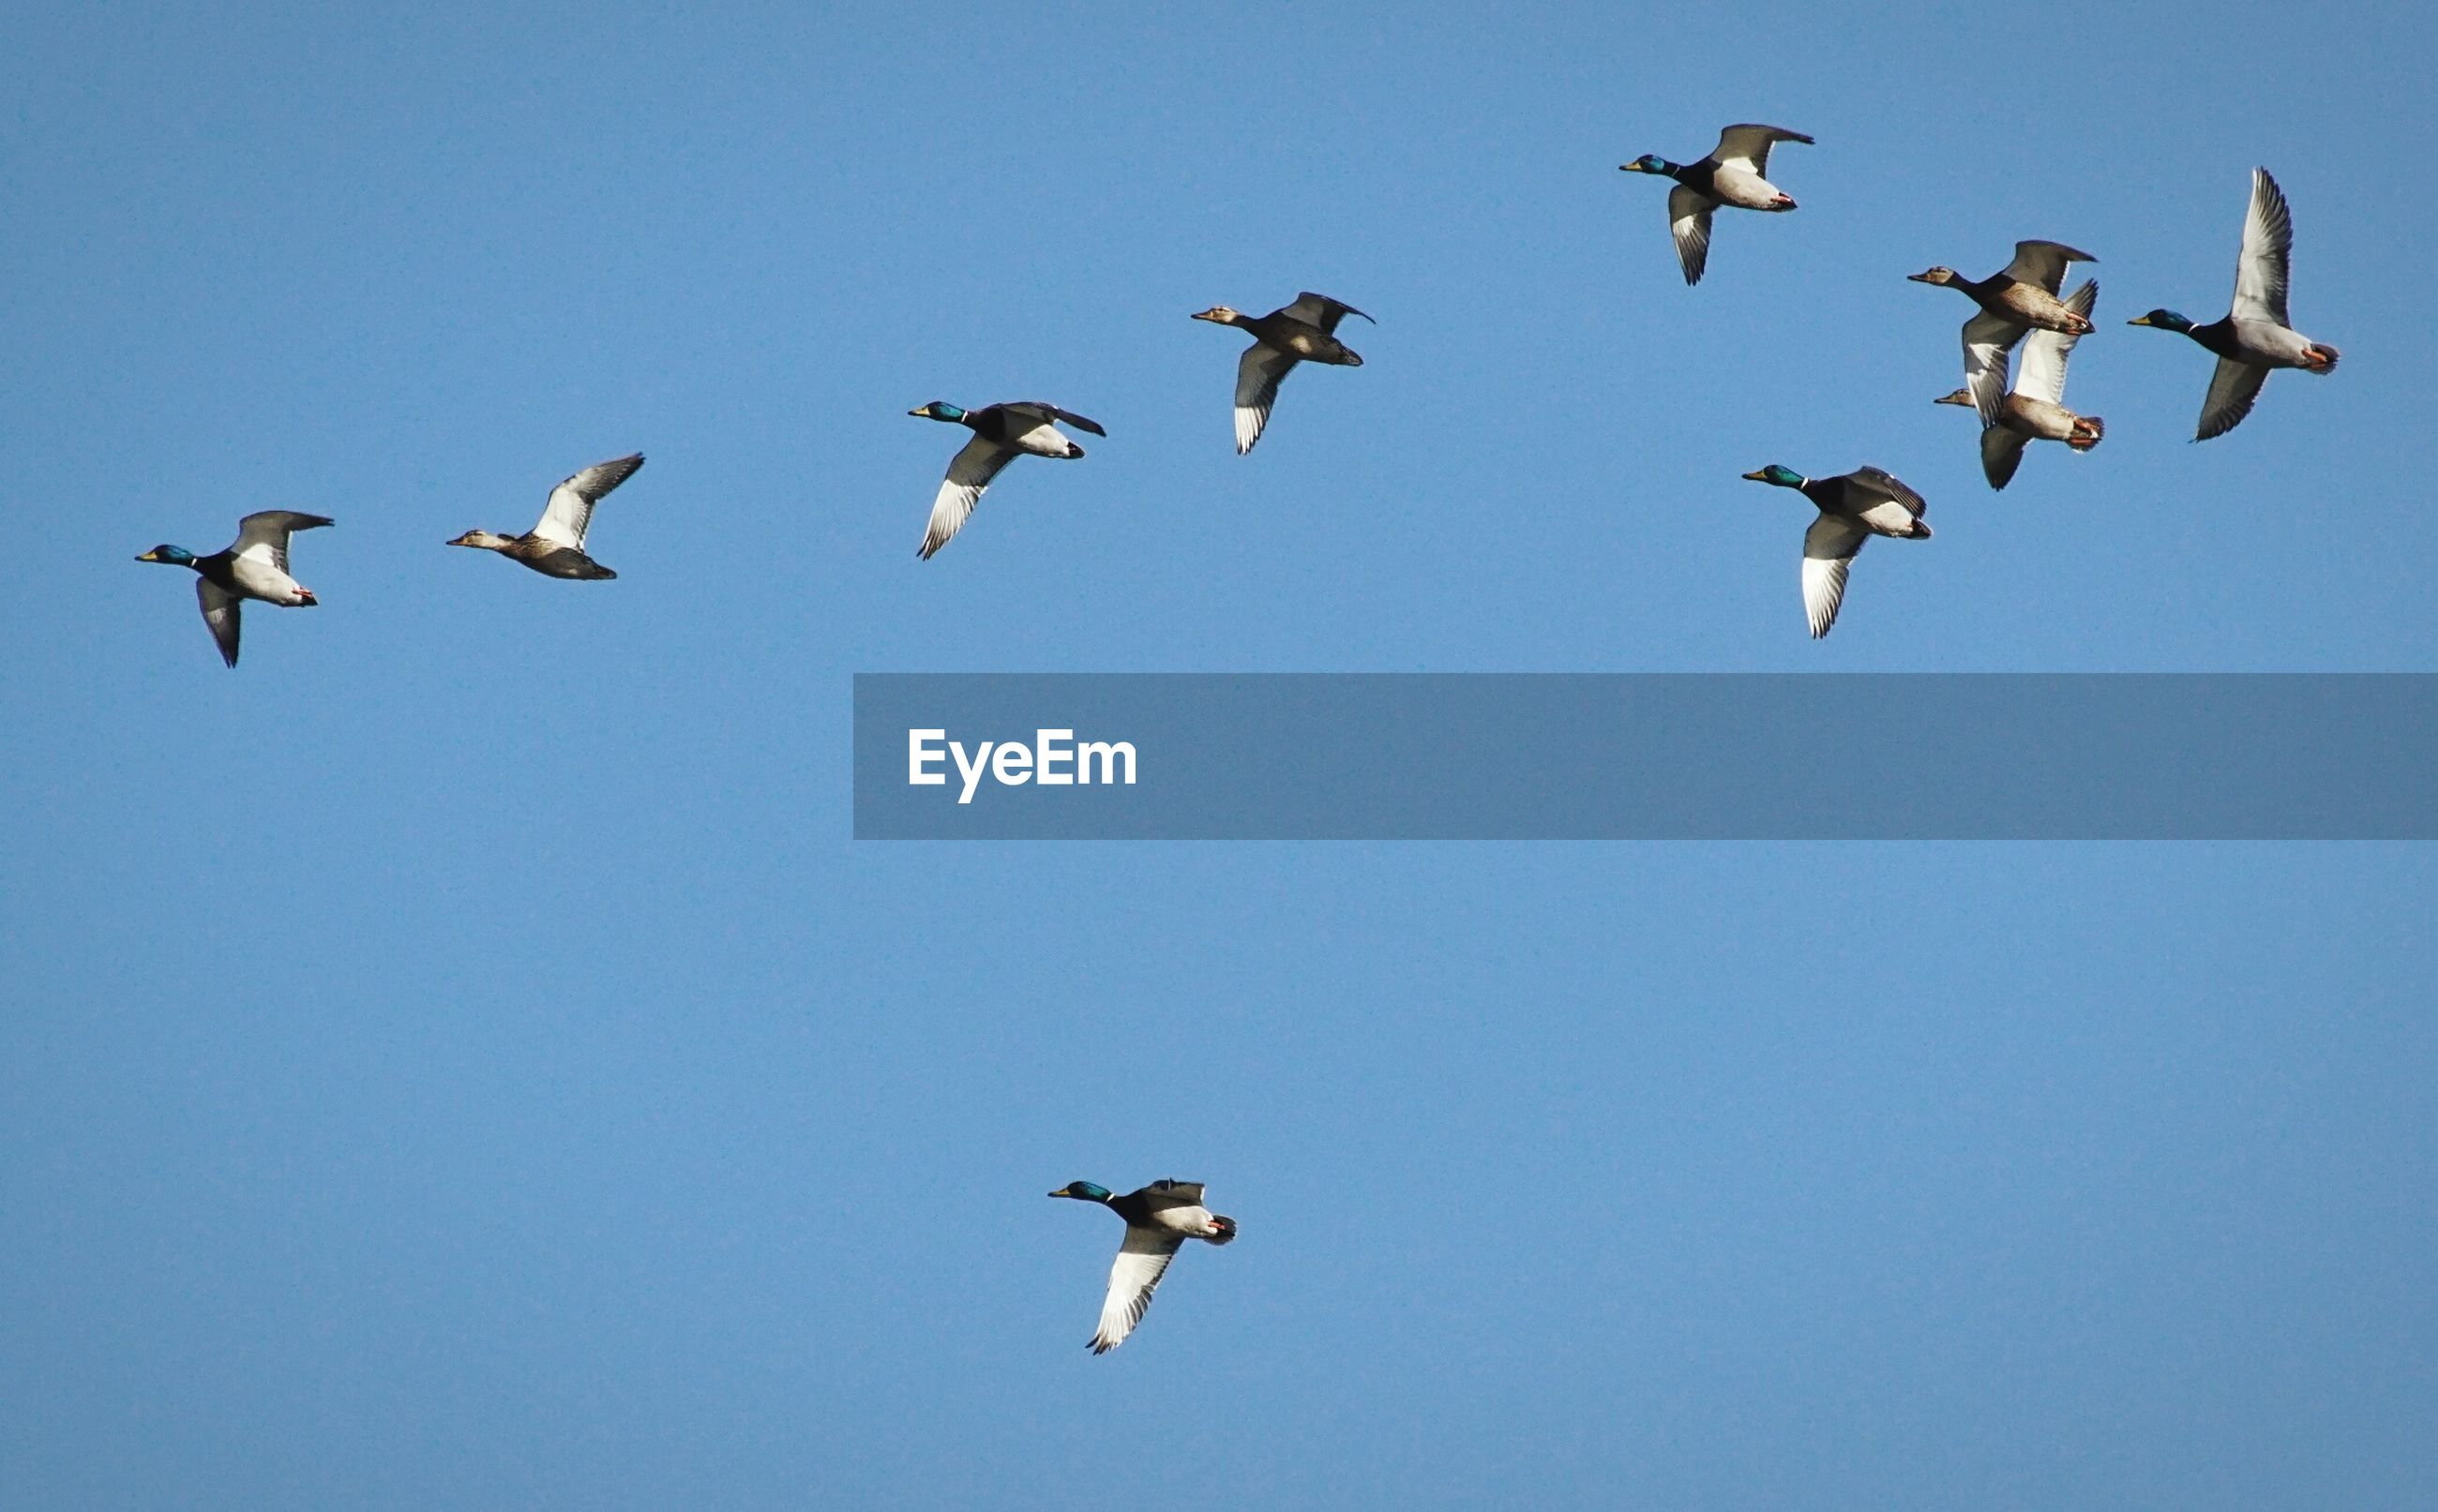 Low angle view of ducks flying against clear blue sky